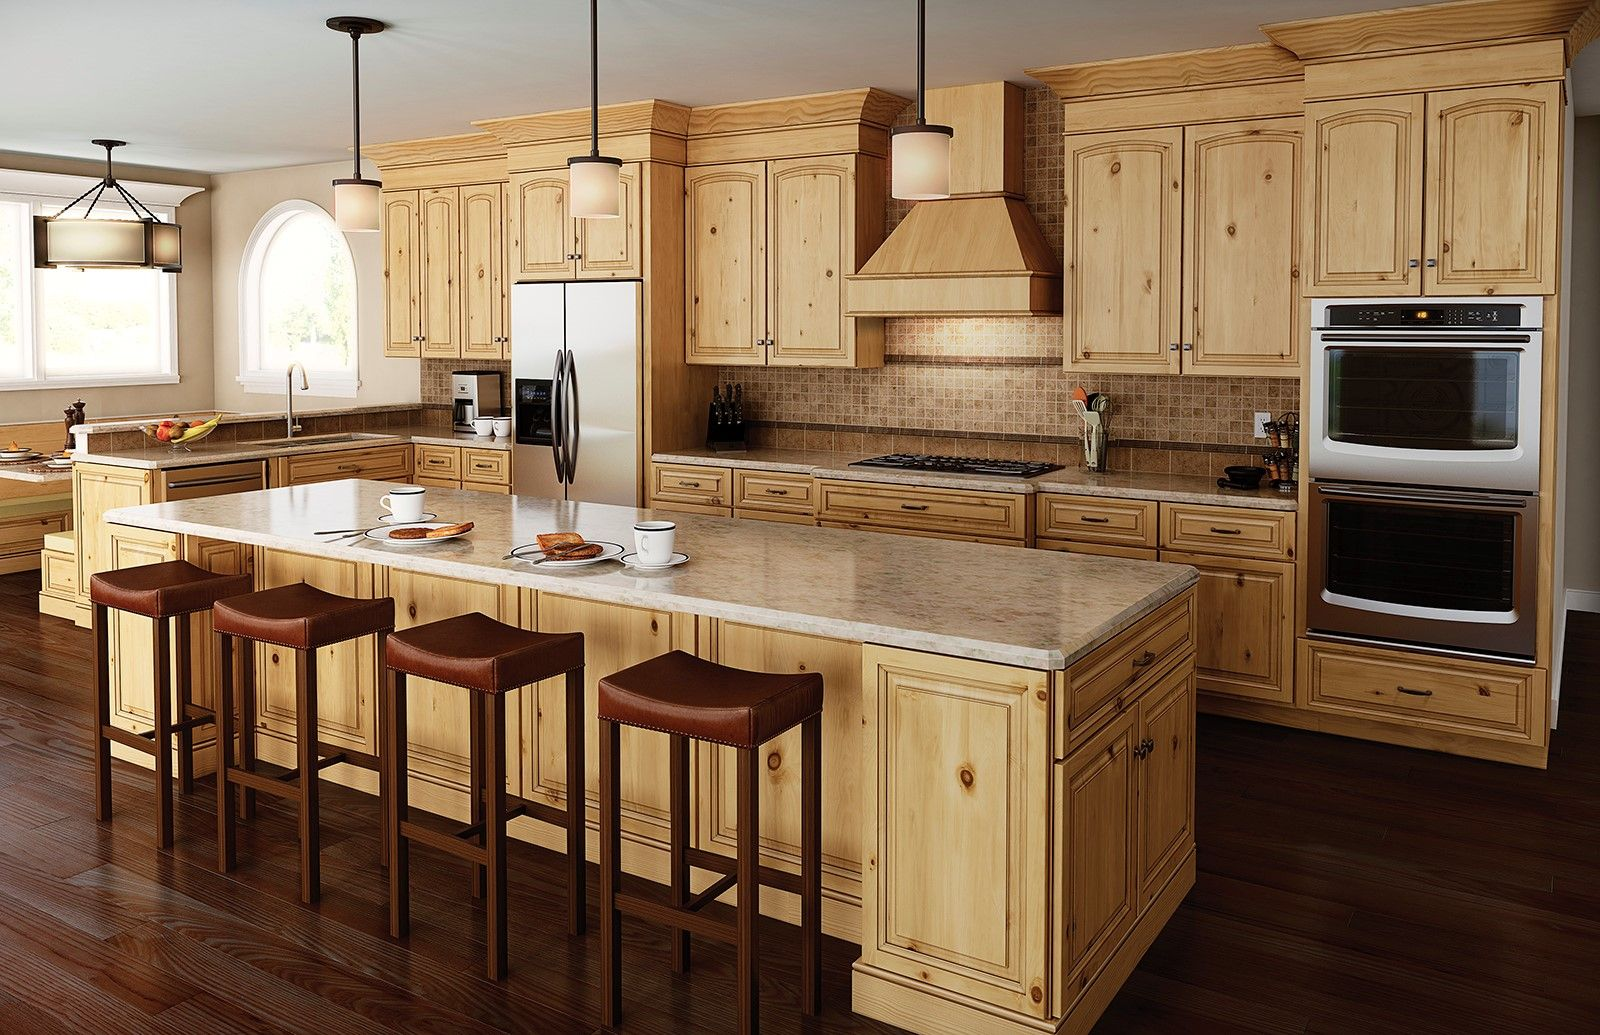 images of kitchen cabinets in natural rustic birch google search hickory kitchen cabinets on kitchen cabinets natural wood id=26110